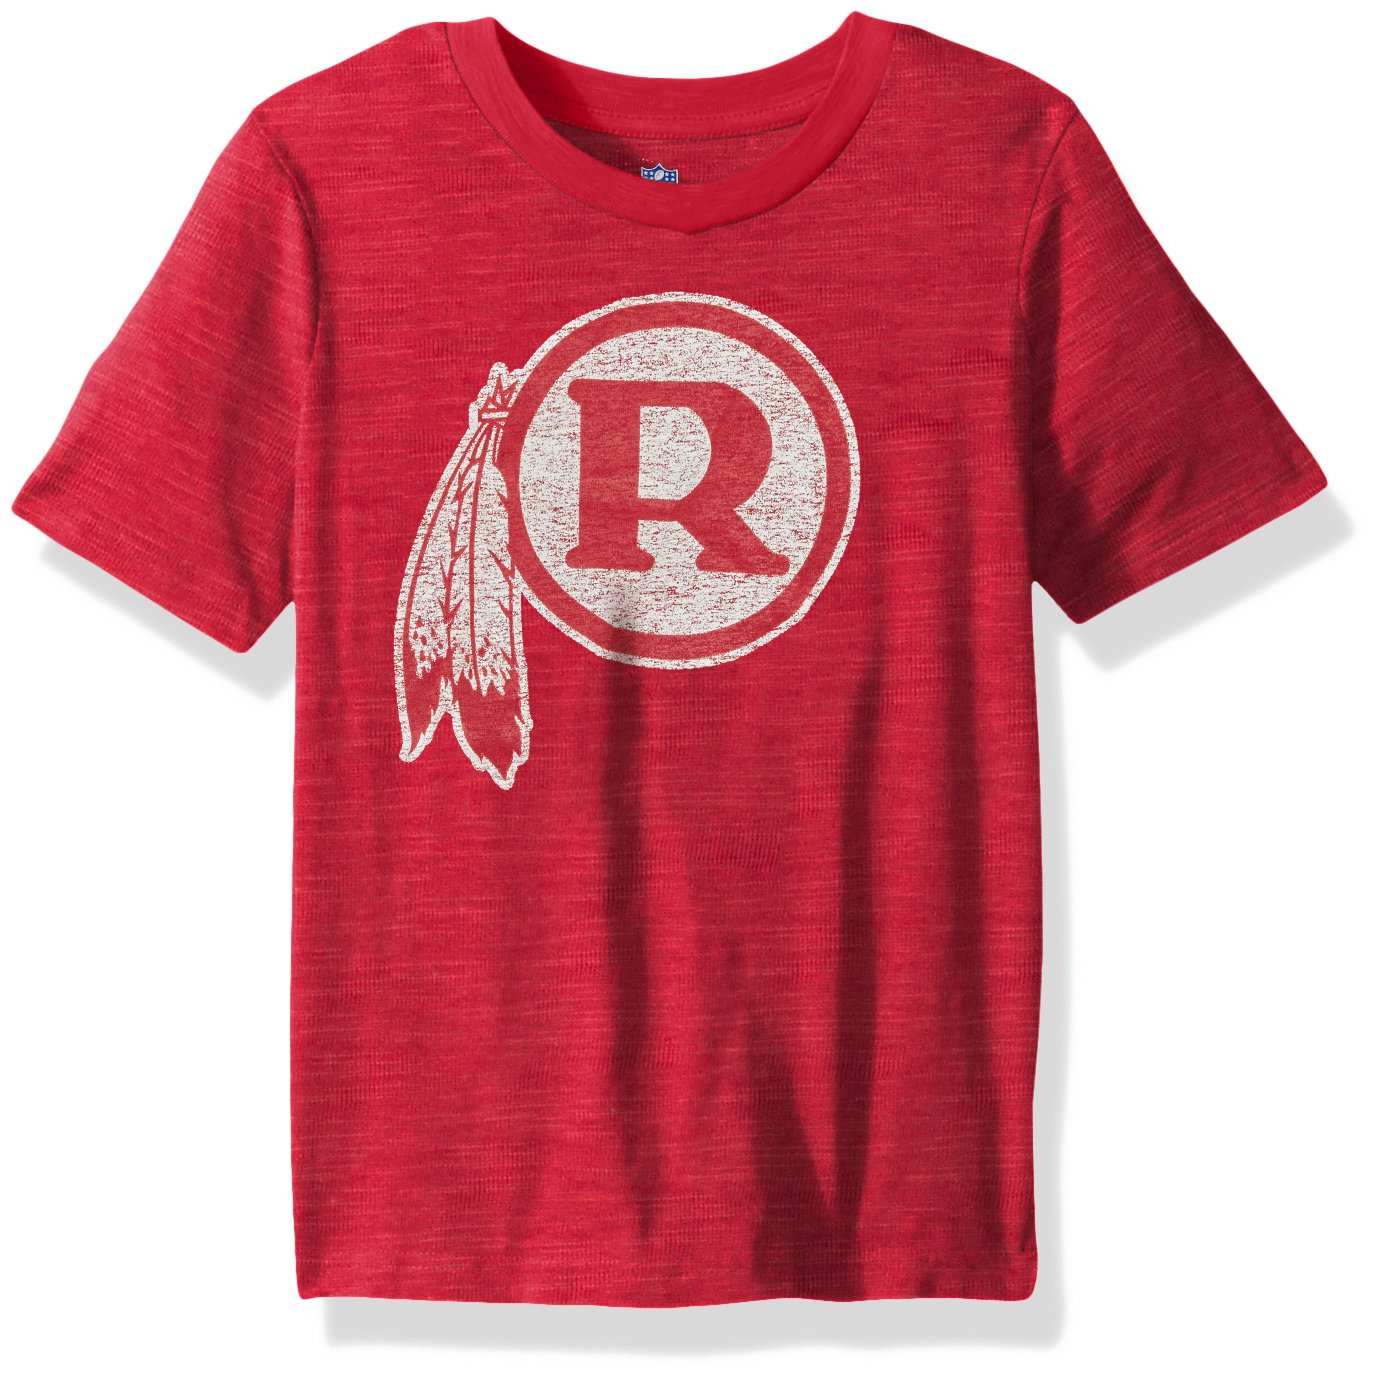 Outerstuff NFL NFL Kids /& Youth Boys Carbon Logo Performance Short Sleeve Tee